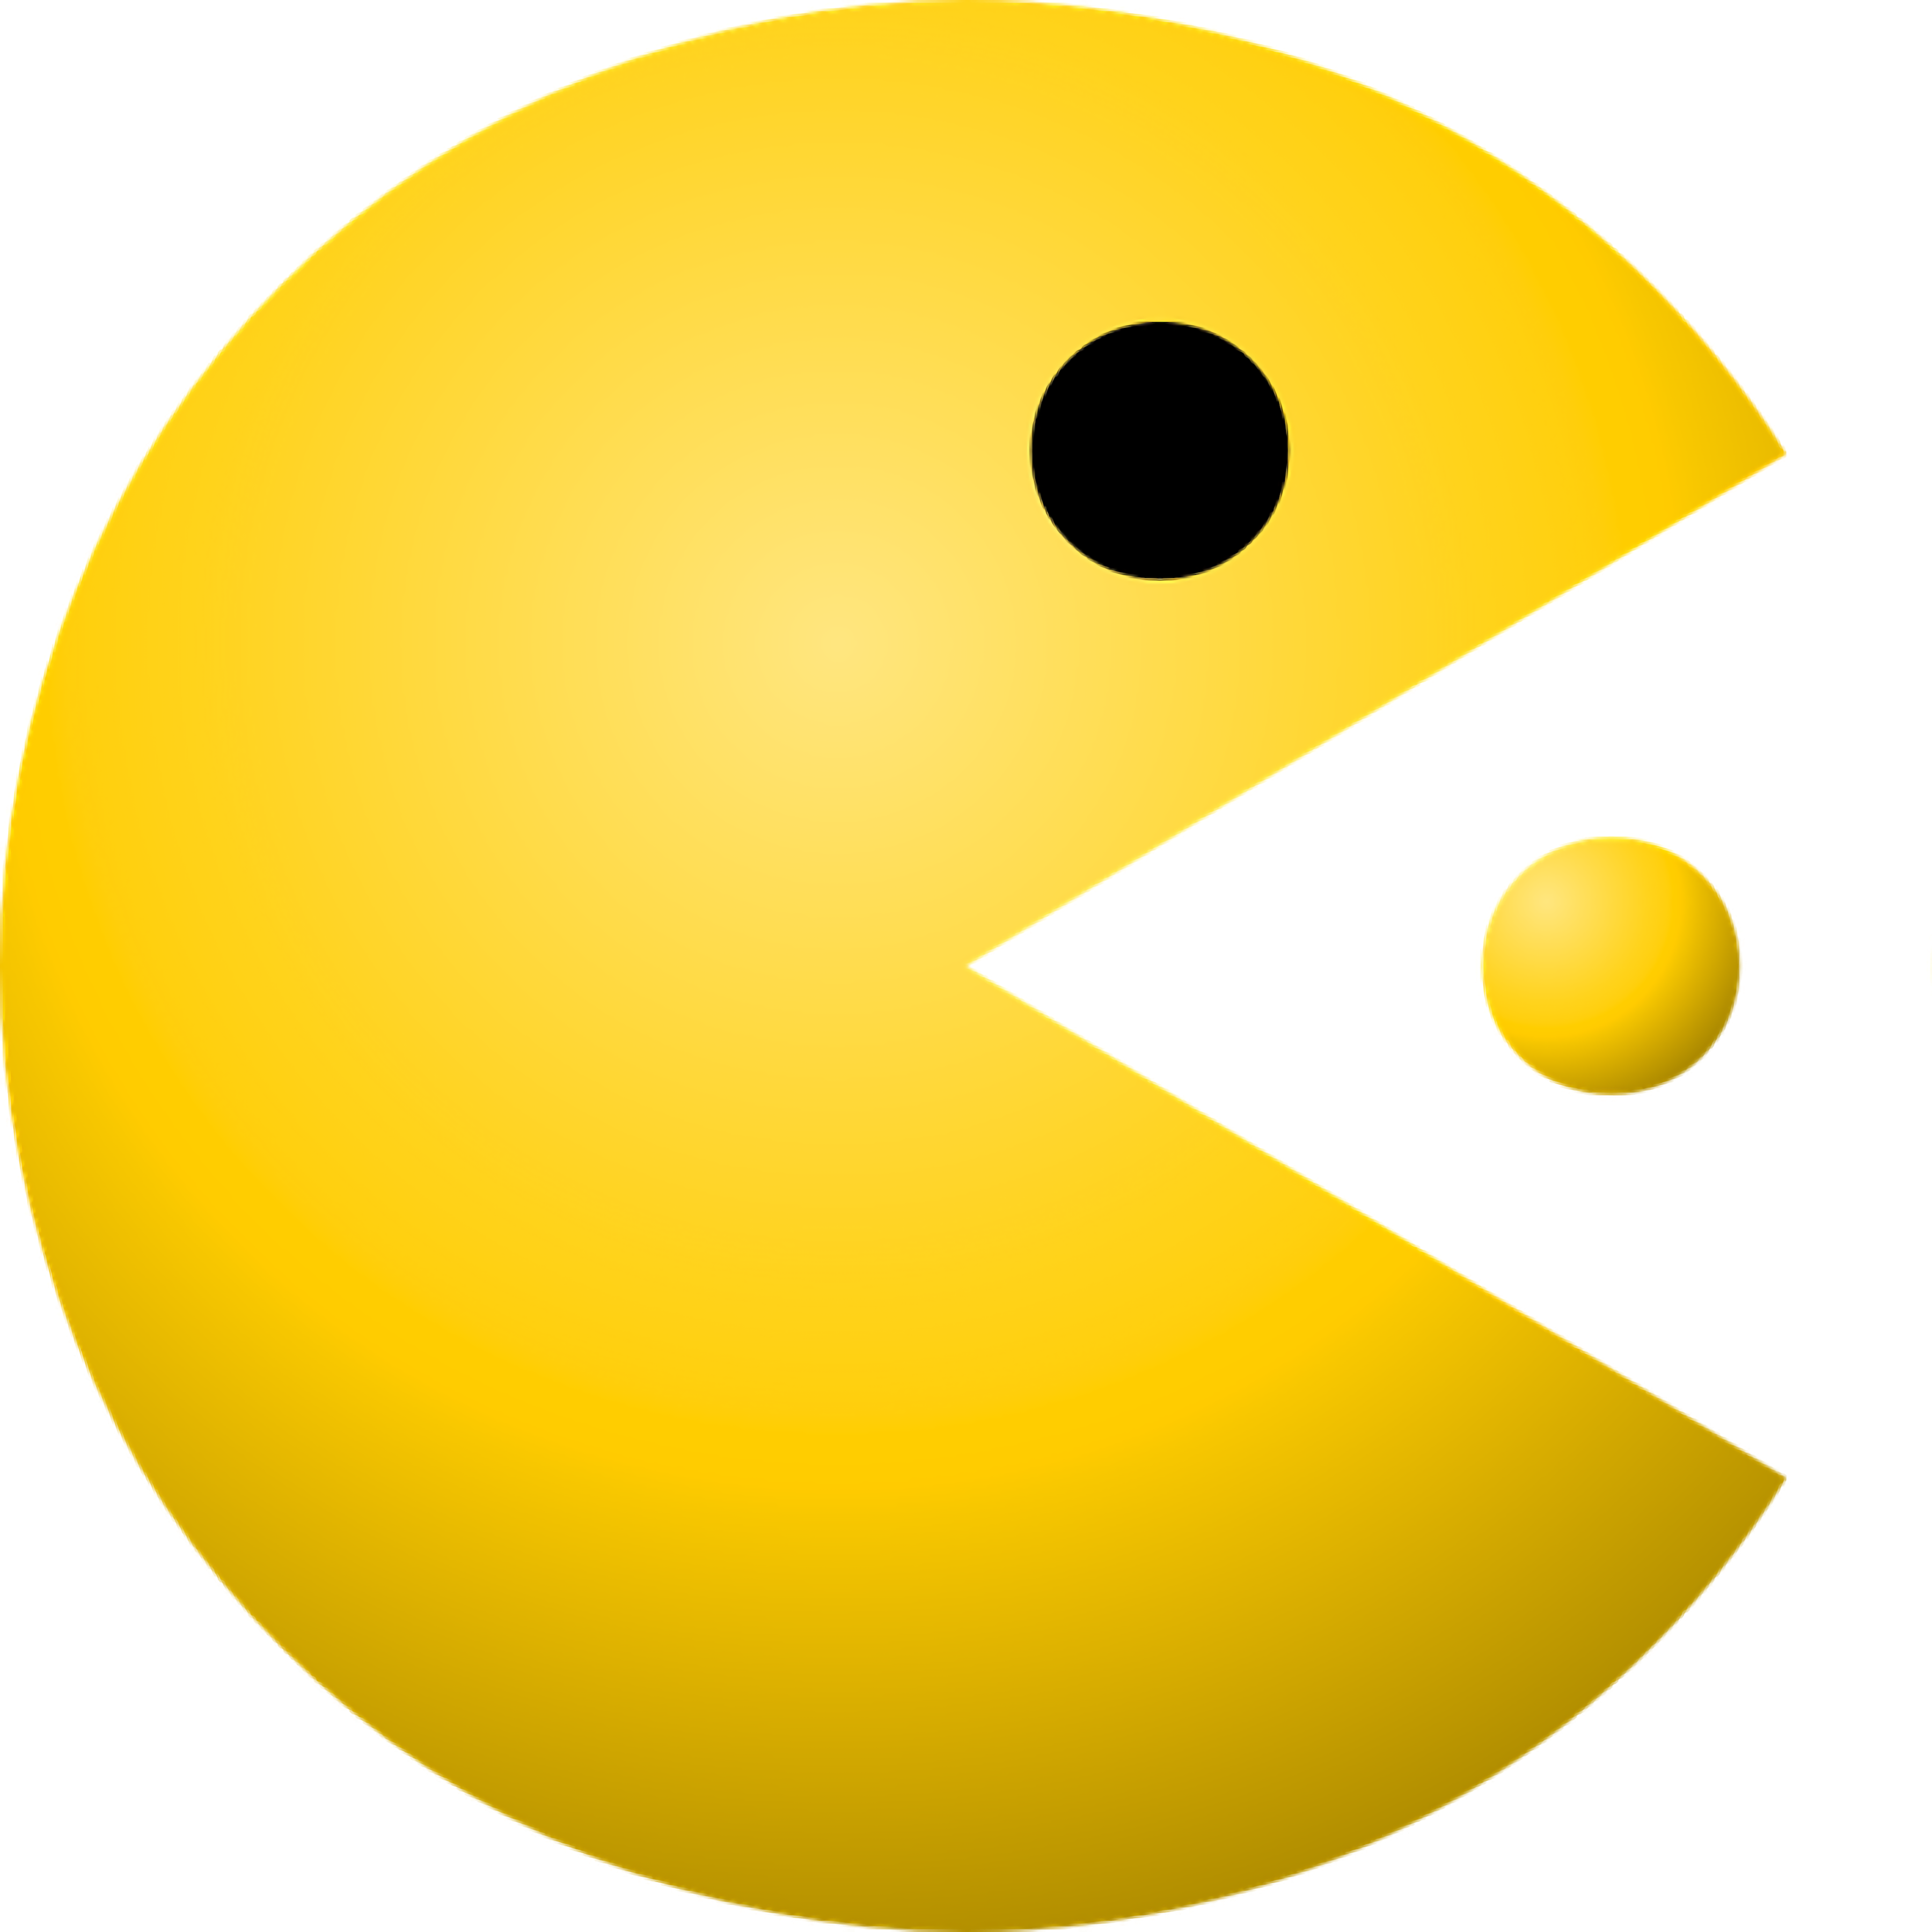 Pacman Games